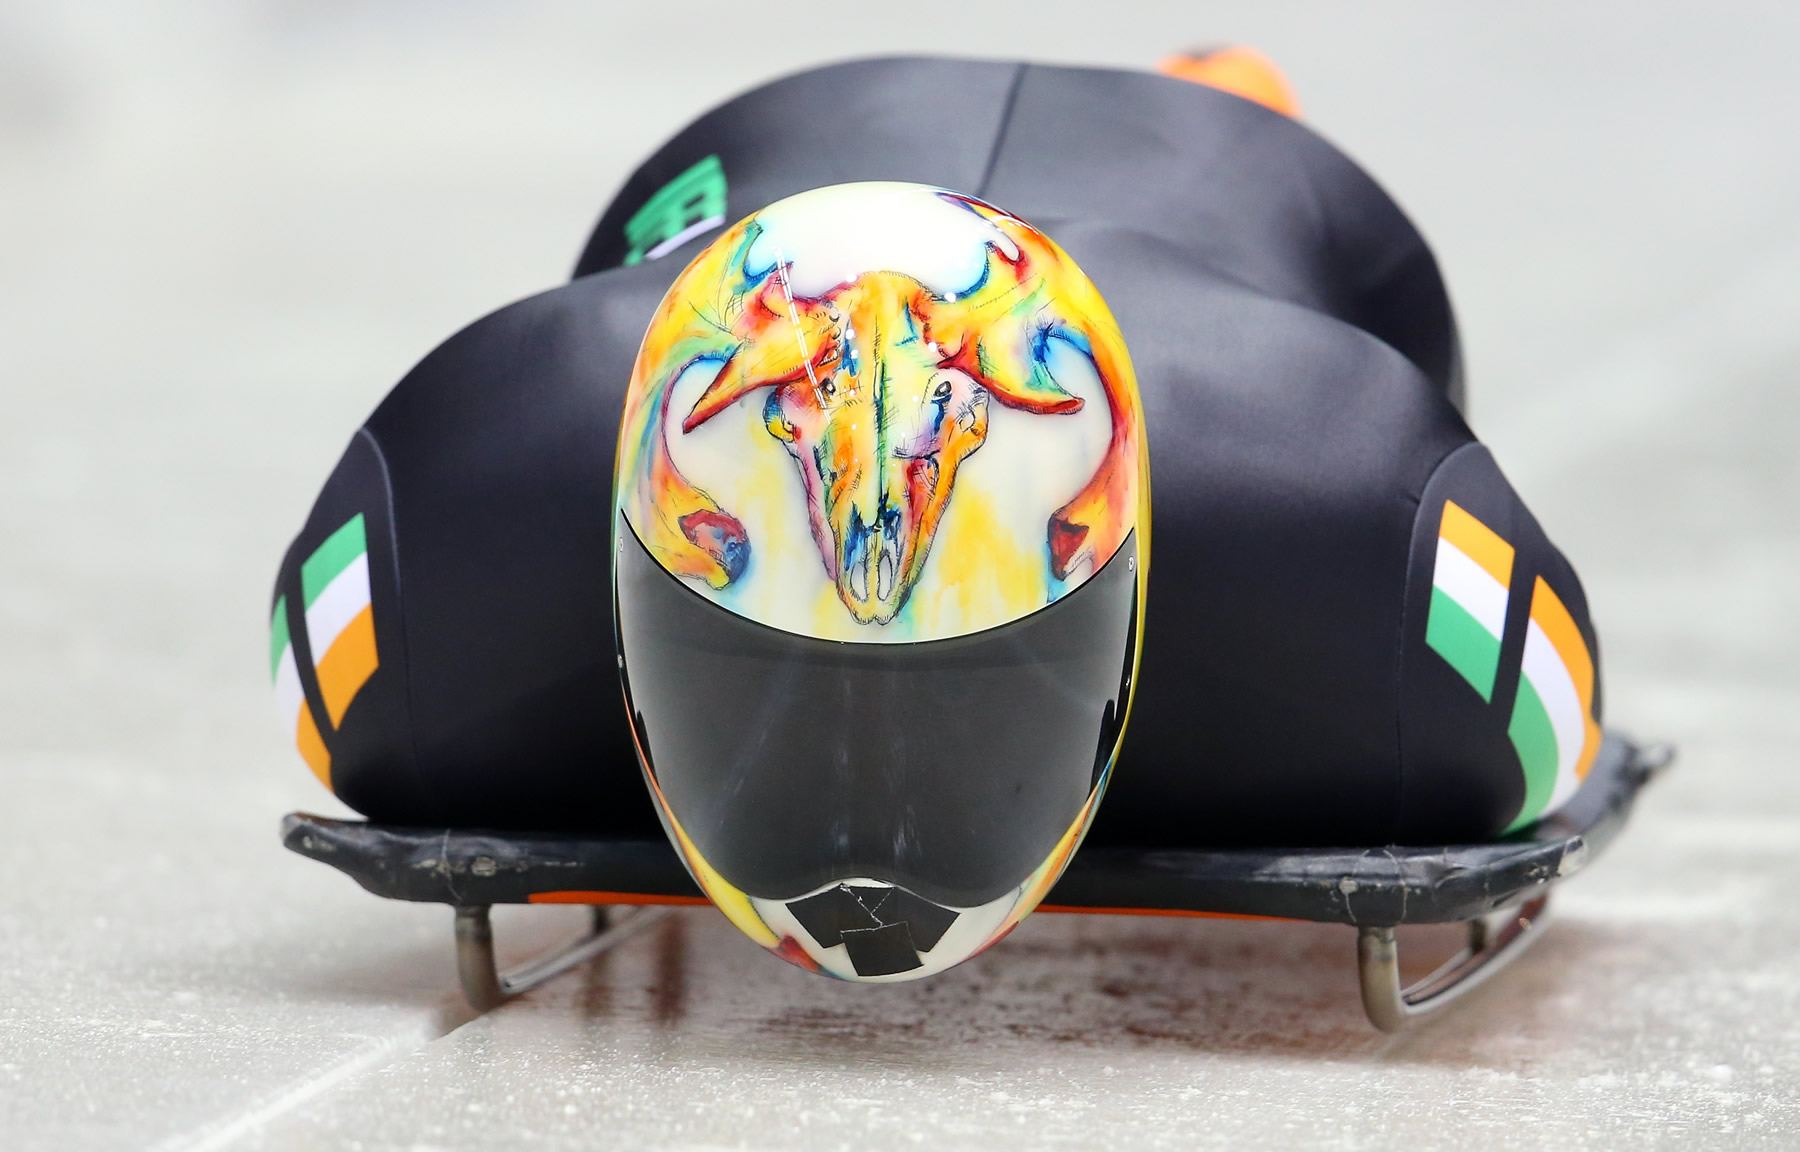 sochi-olympics-skeleton-helmet-ireland-sean-greenwood-01